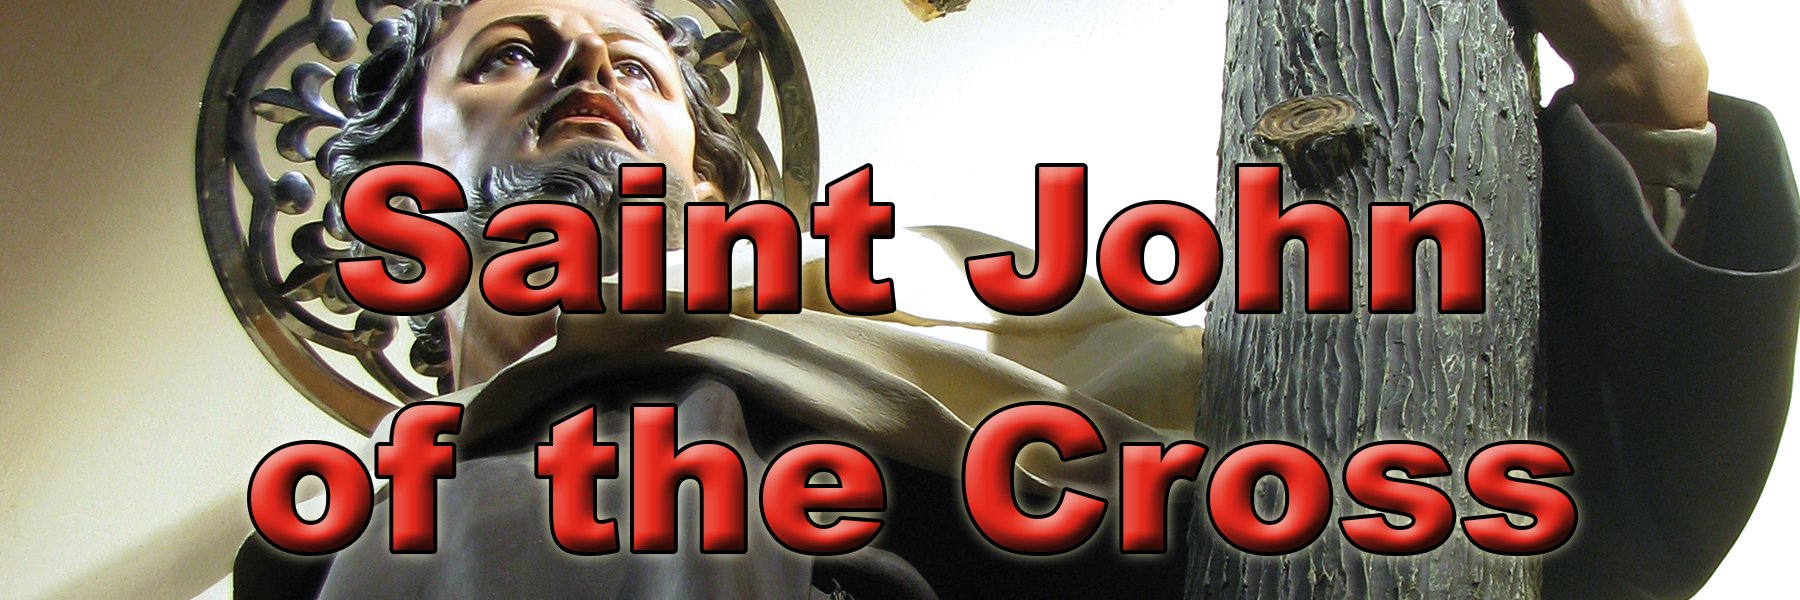 Saint John of the Cross - Reformer